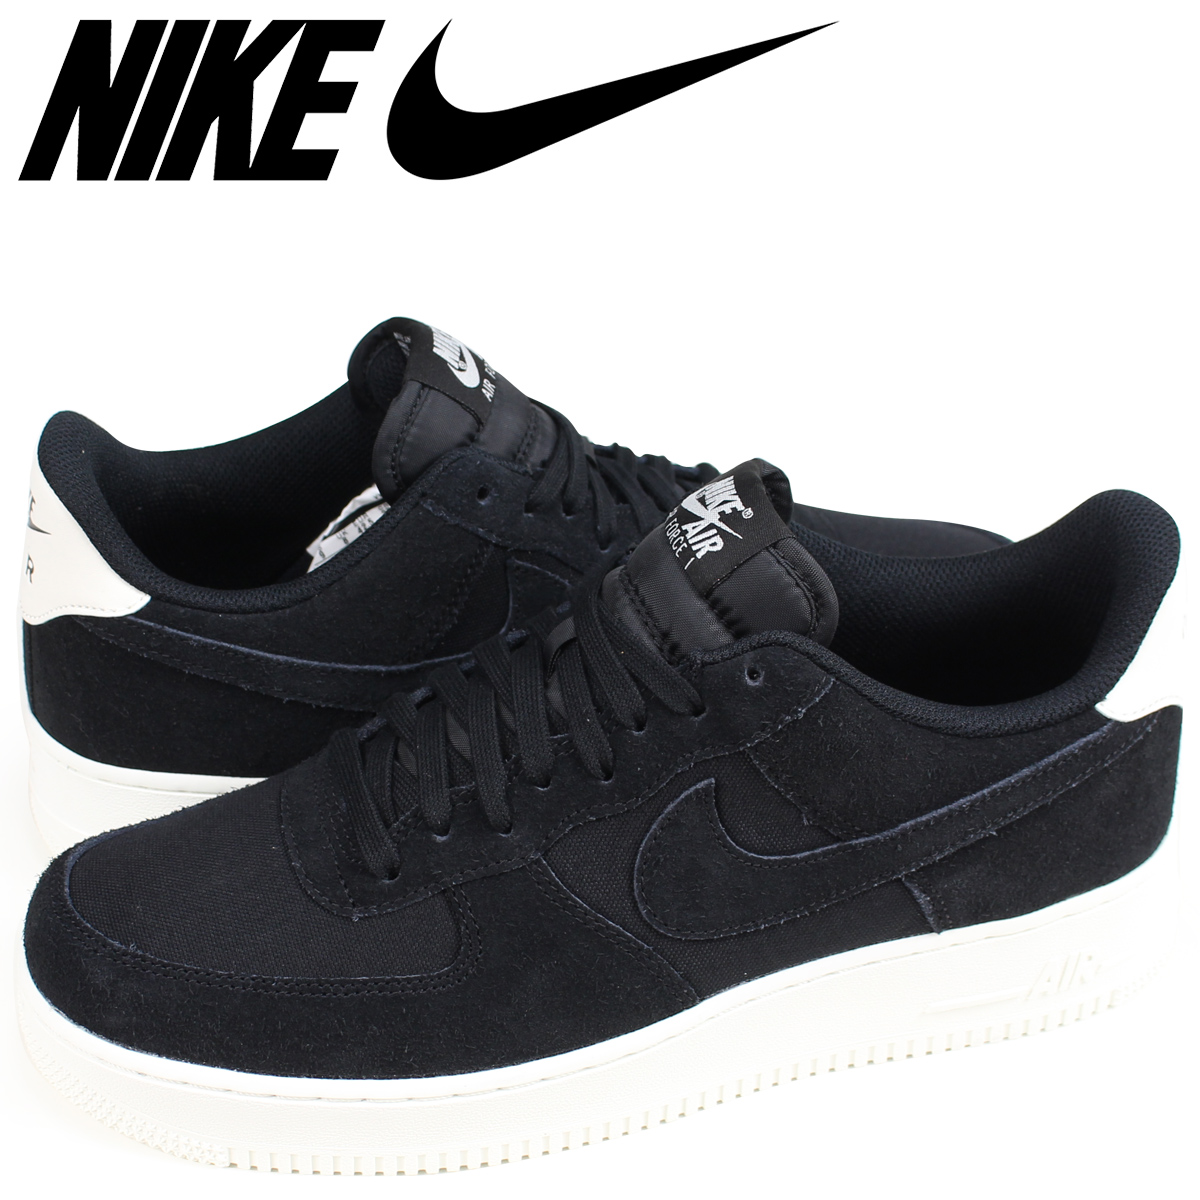 nike air force 1 07 suede black